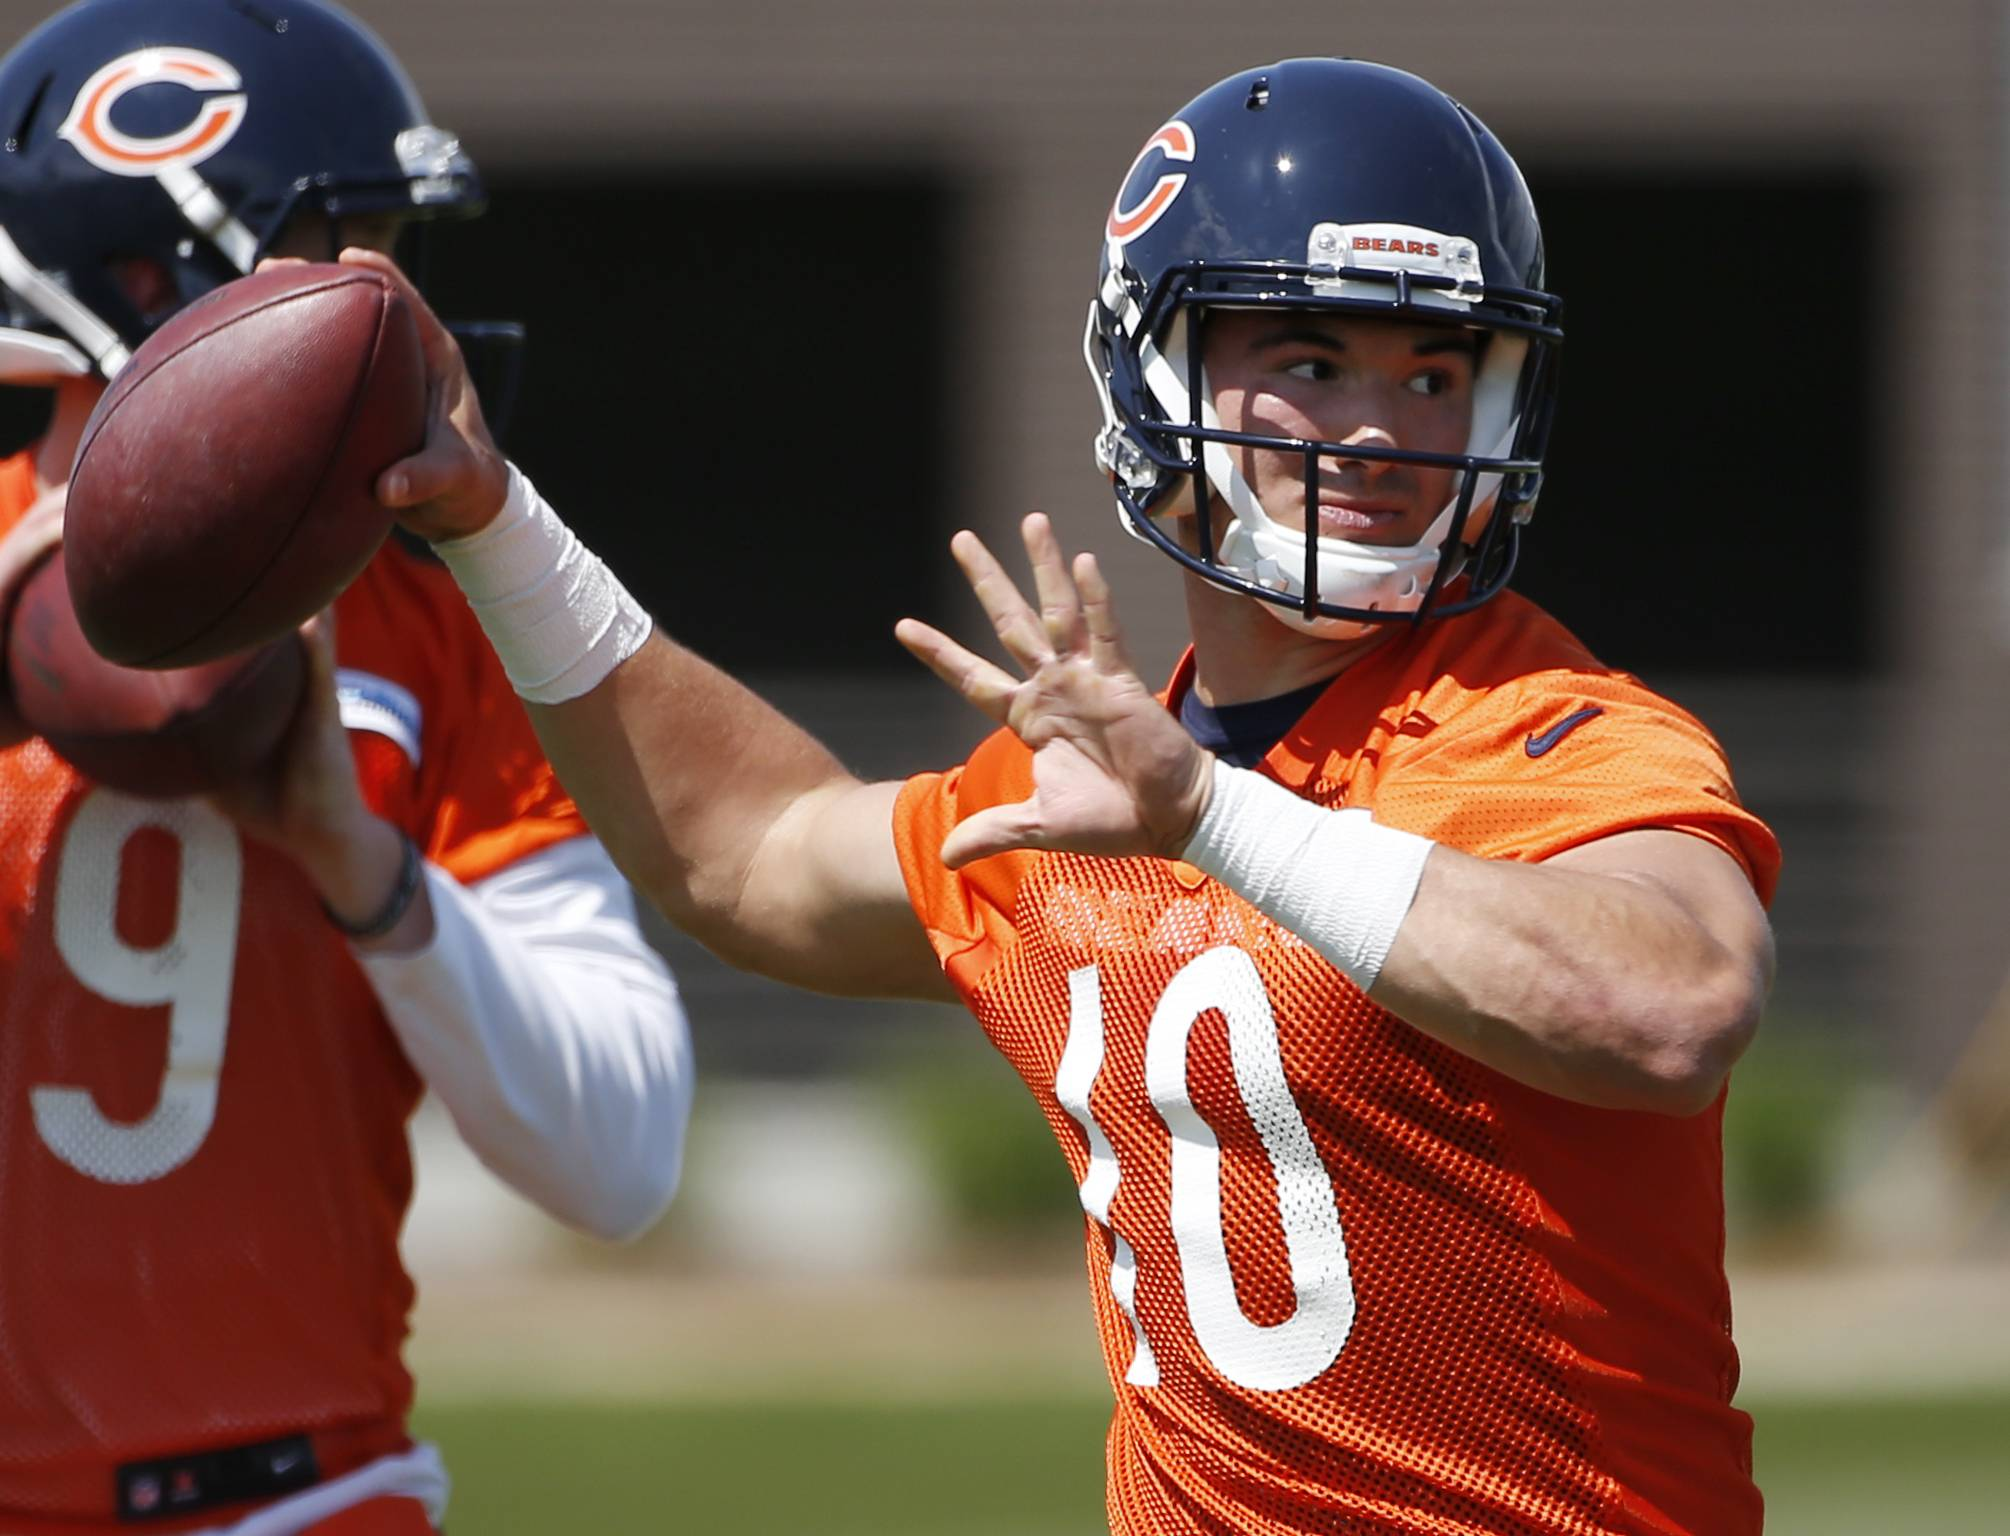 How Bears quarterback Mitch Trubisky is preparing for his debut